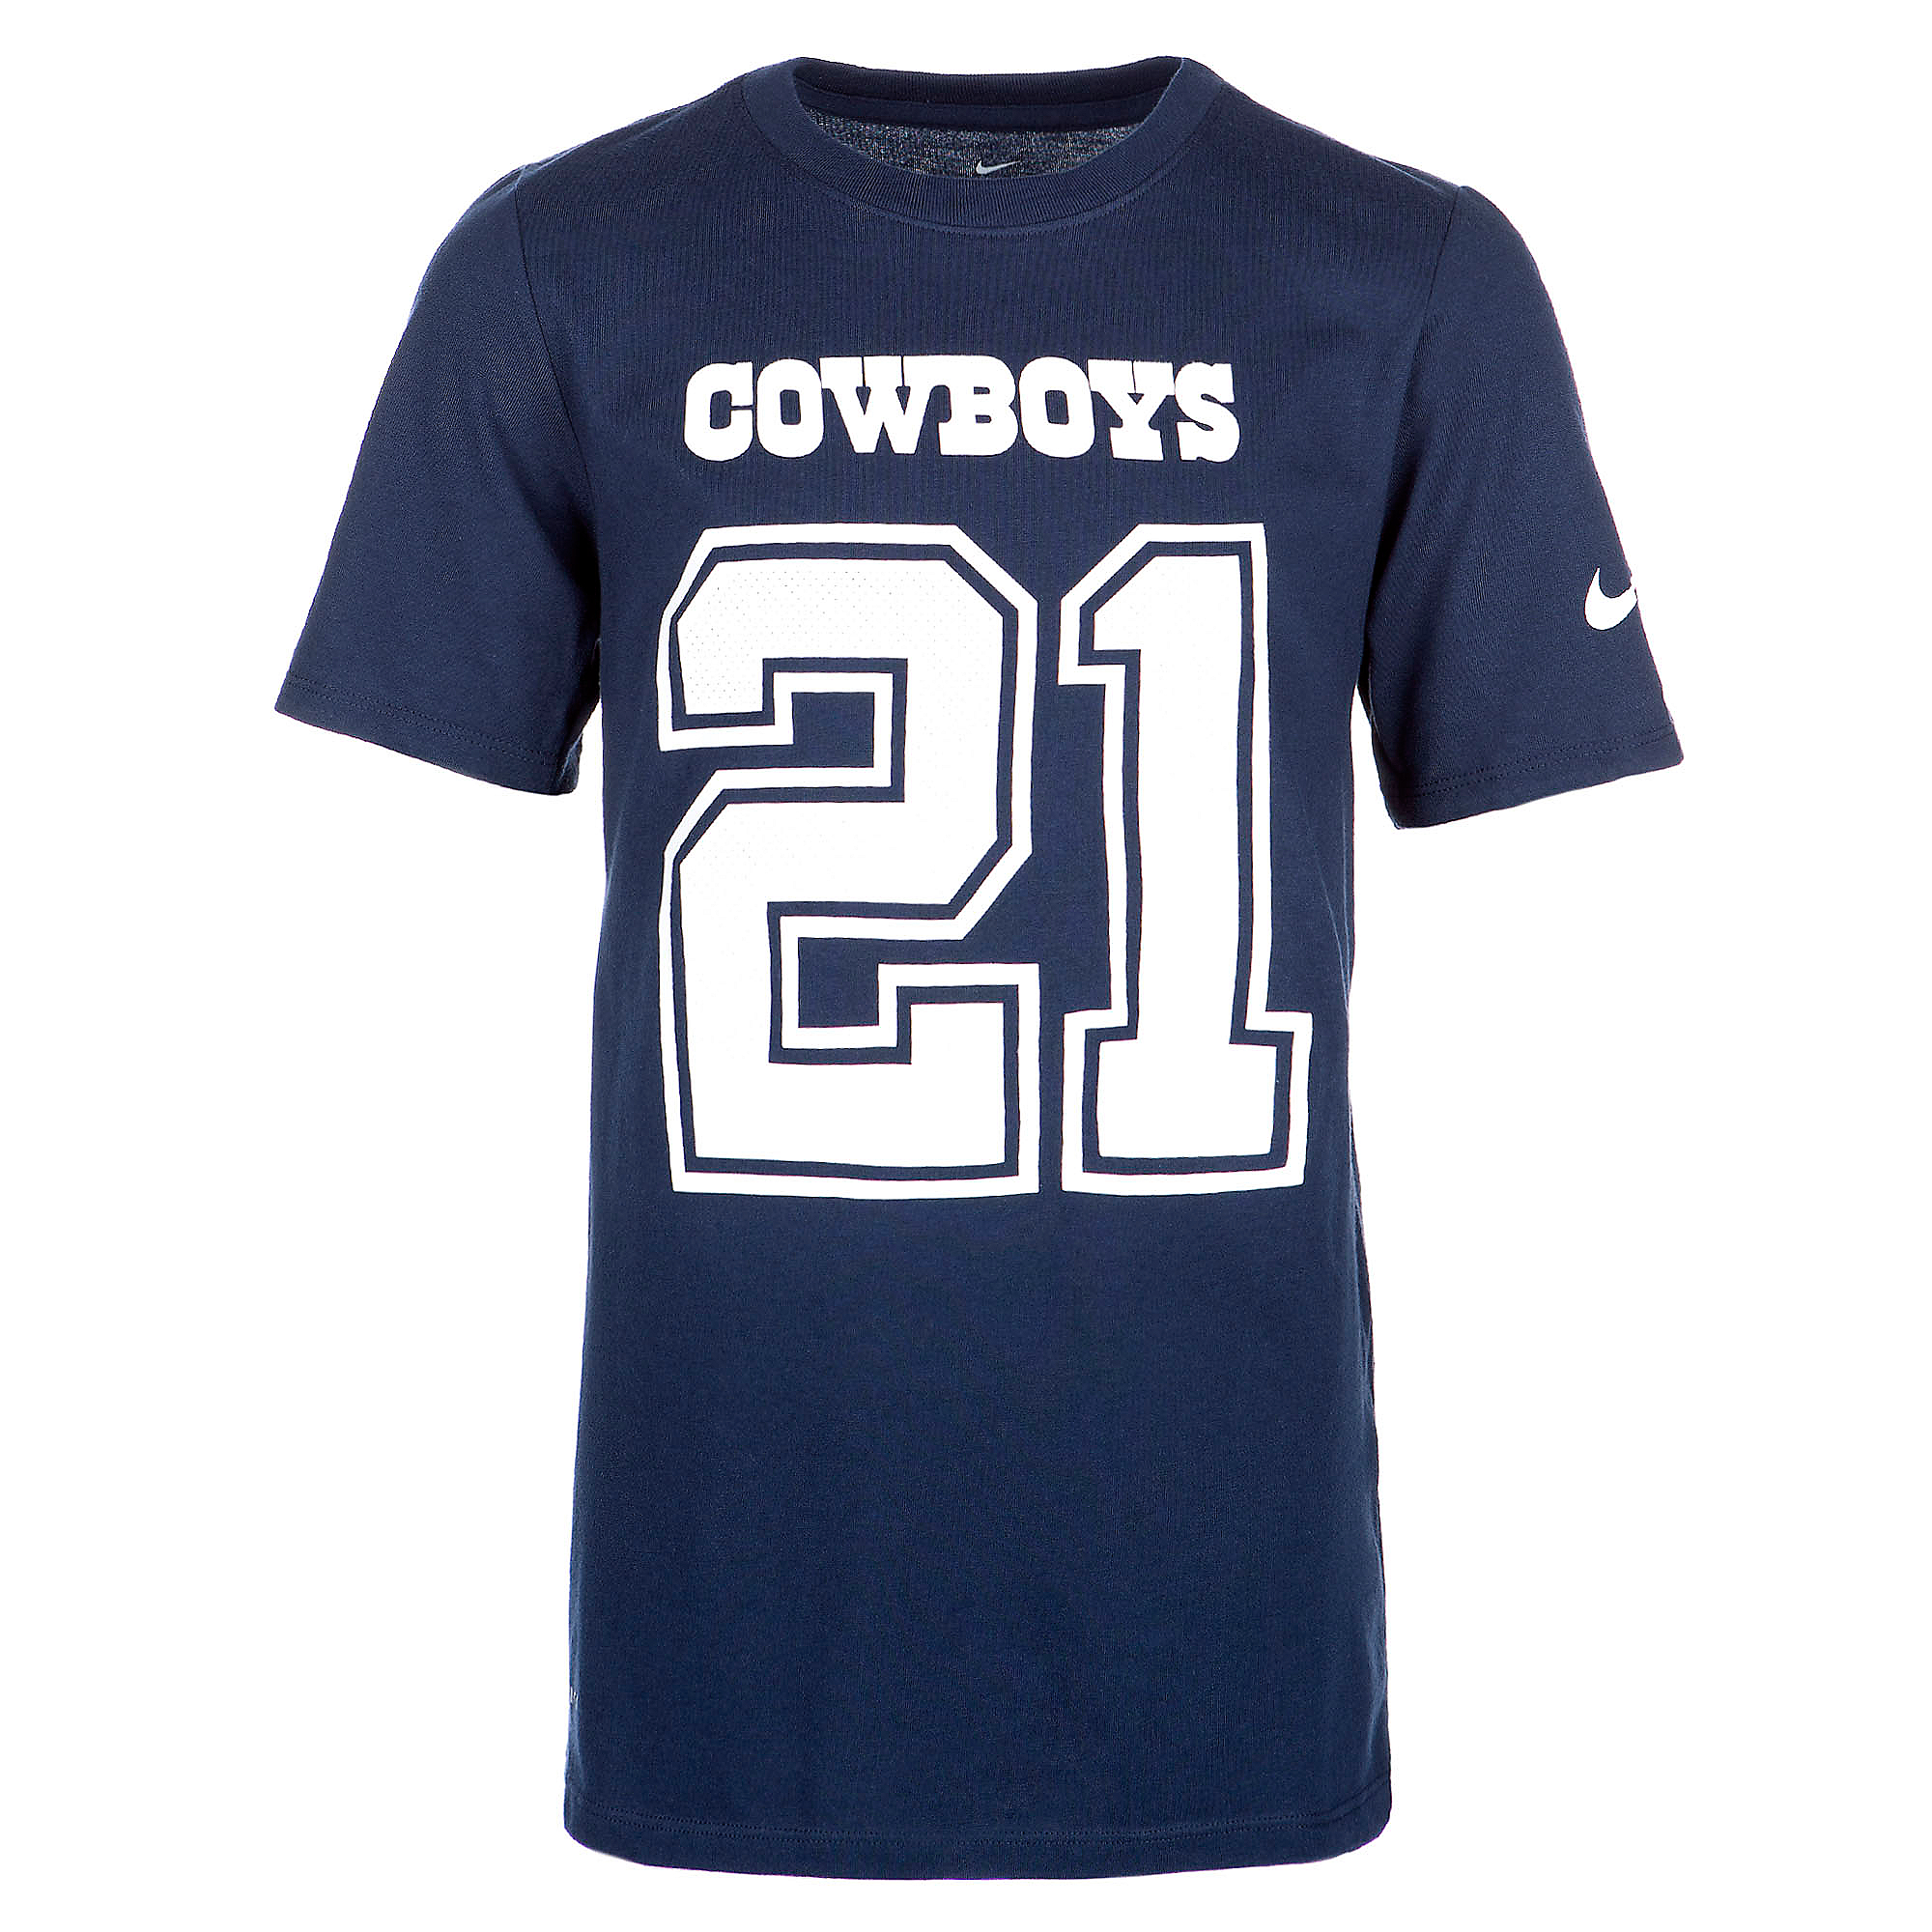 Dallas Cowboys Youth Ezekiel Elliott #21 Nike Player Pride 2 T-Shirt